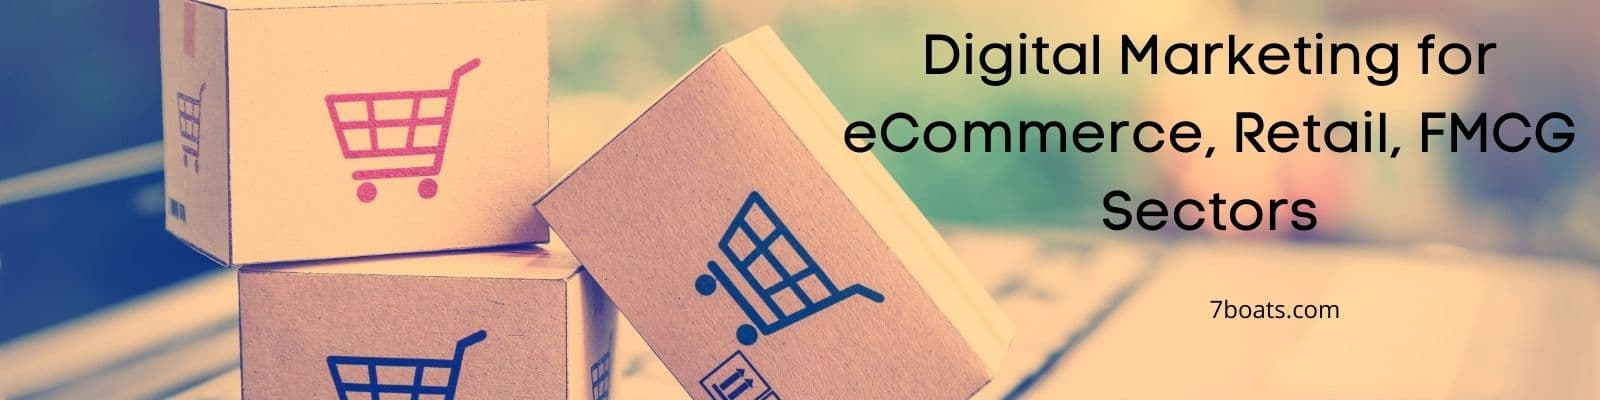 Digital Marketing for eCommerce, Retail, FMCG Sectors